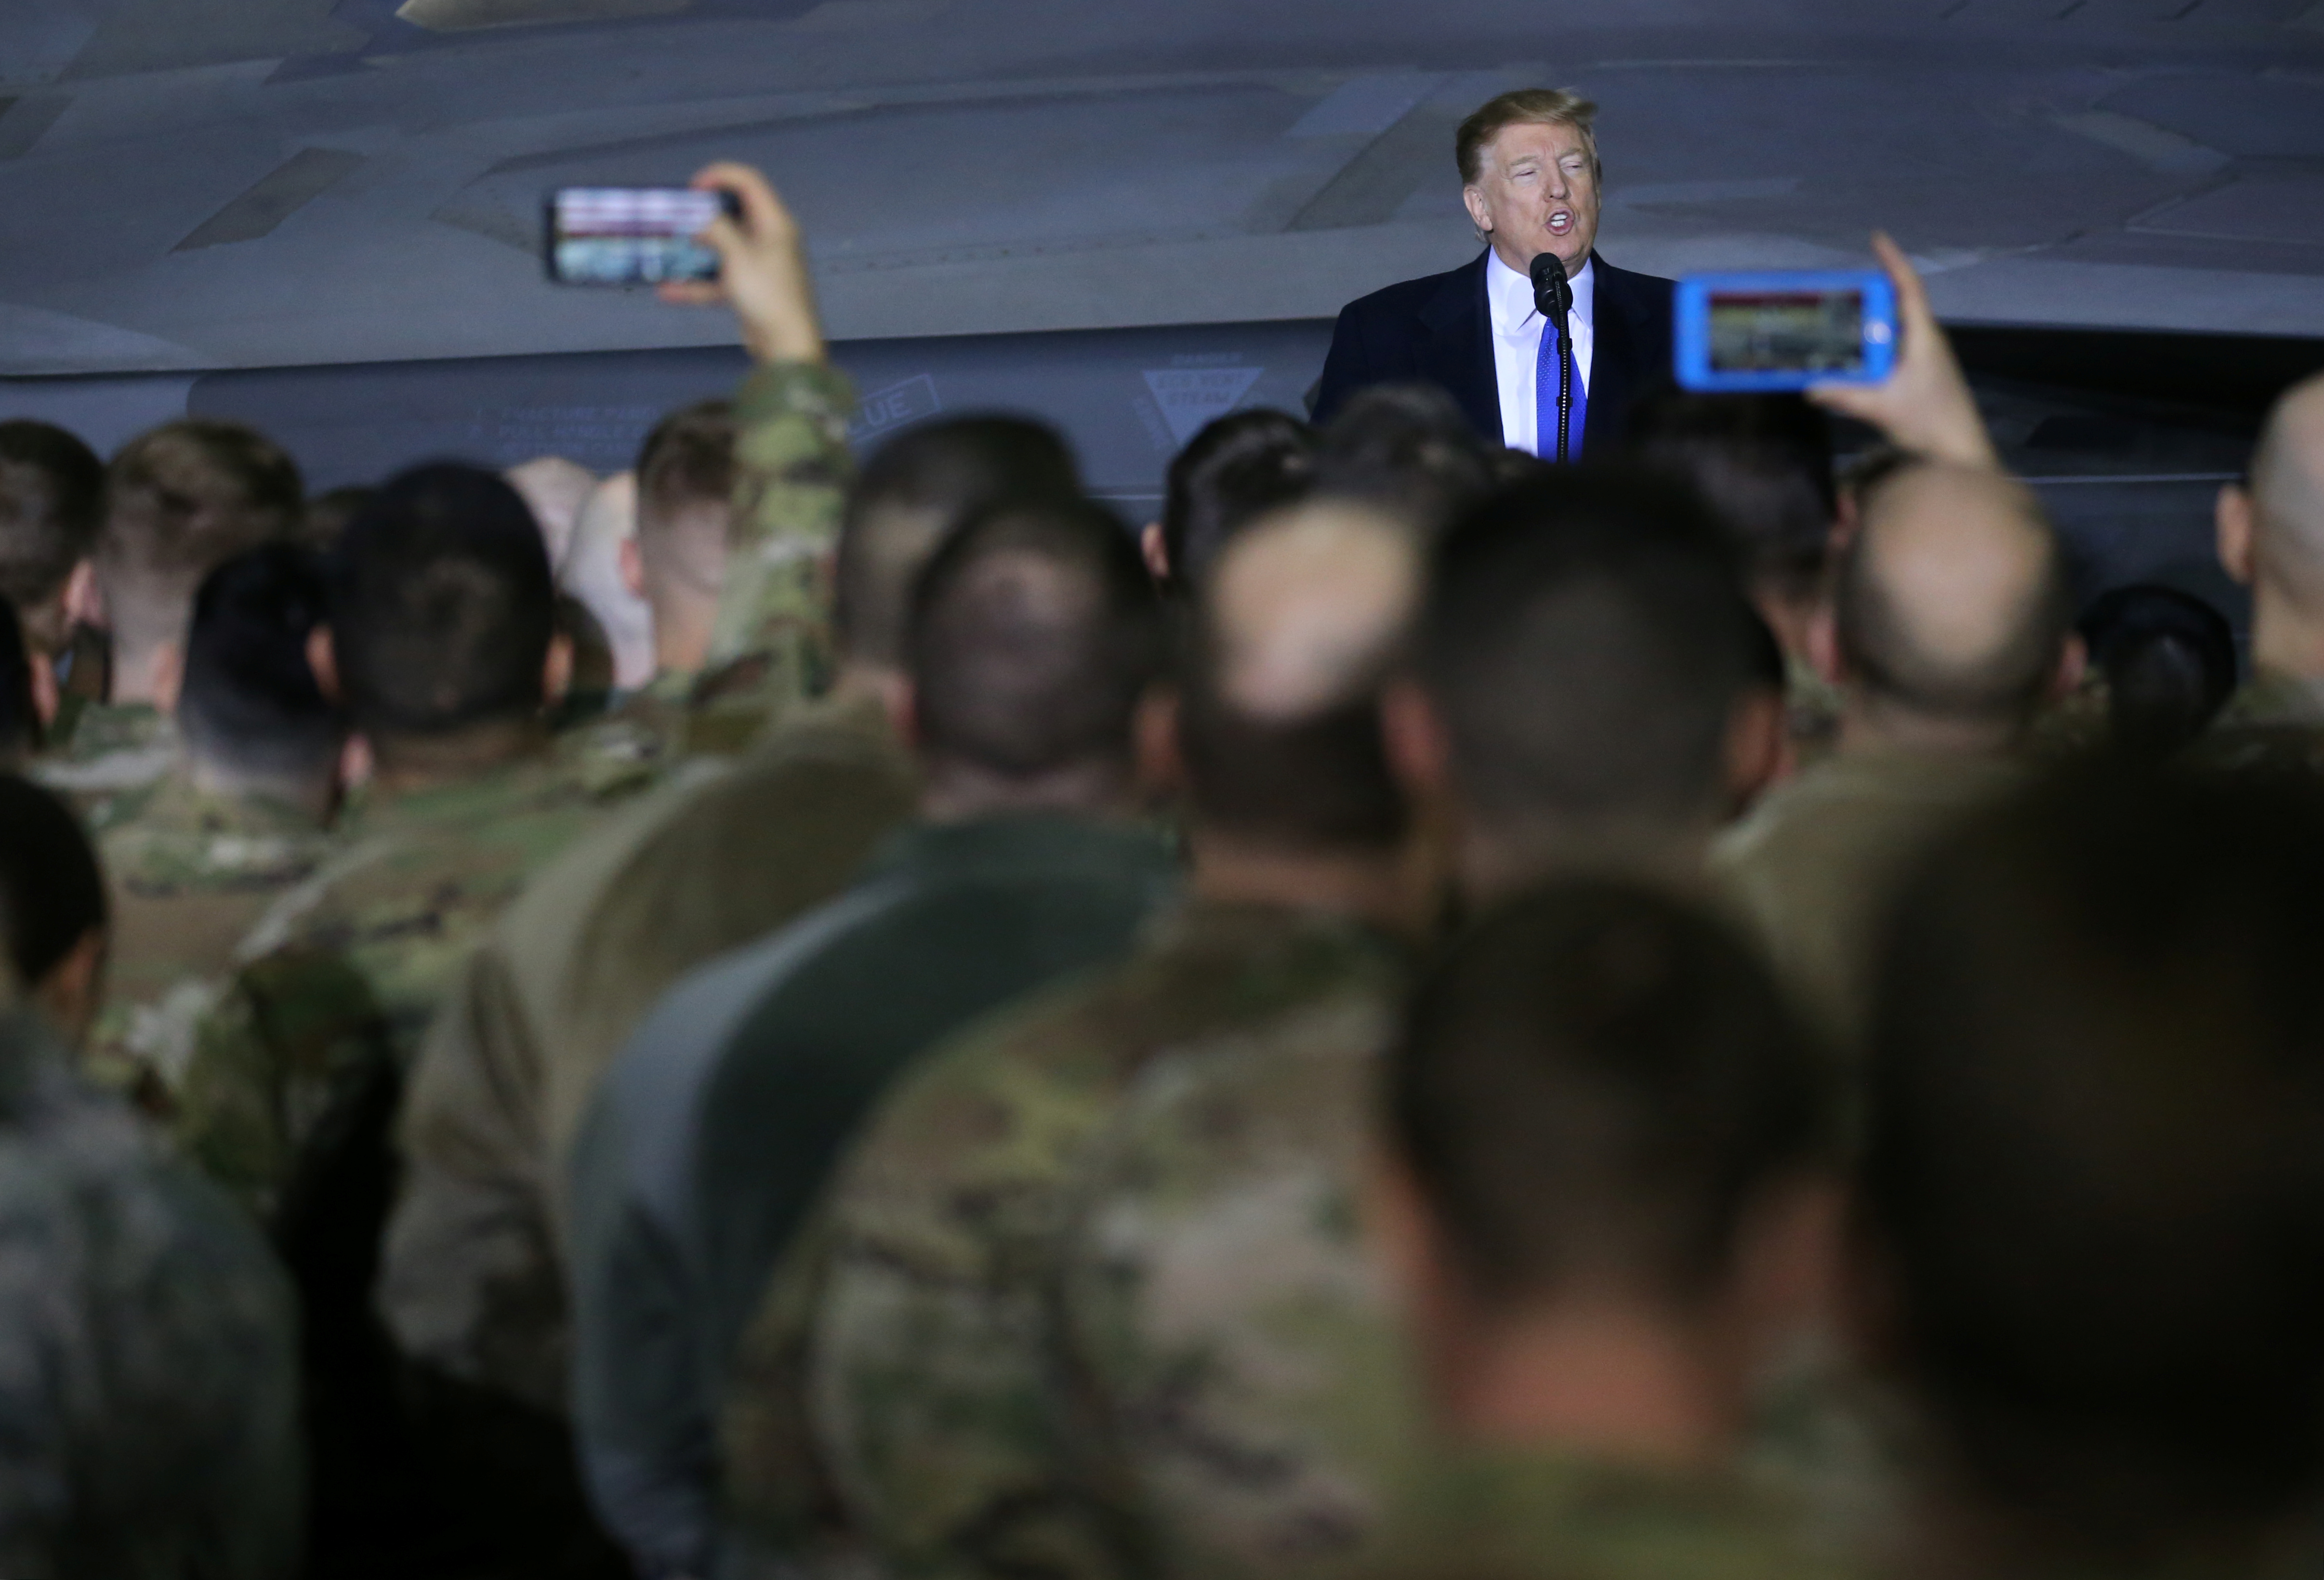 President Donald Trump speaks to members of the U.S. military after his summit meeting with North Korea's Kim Jong Un in Vietnam, during a refueling stop at Elmendorf Air Force Base in Anchorage, Alaska, Feb. 28, 2019.